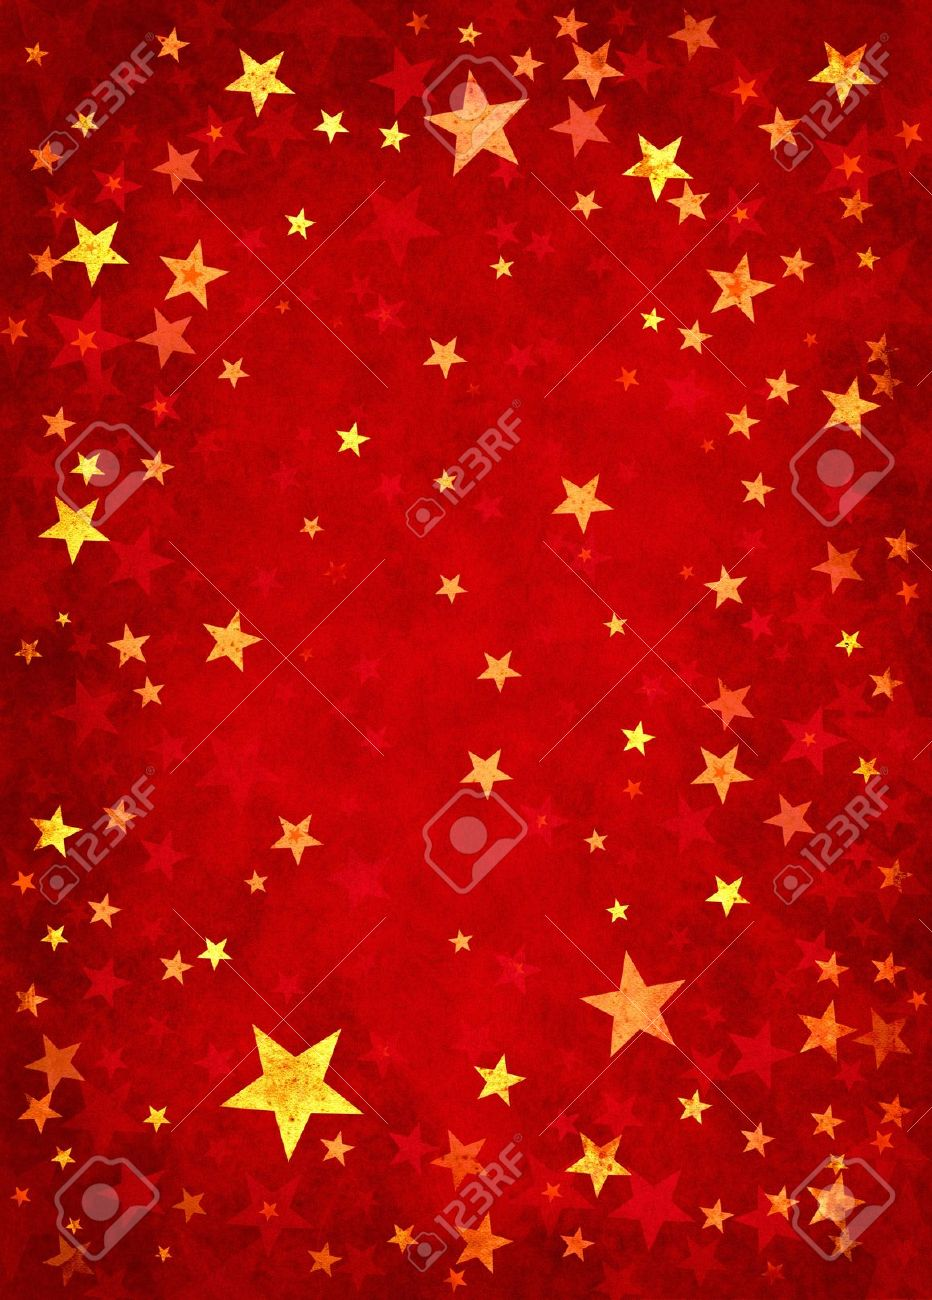 Star shapes on a textured red paper background. Stock Photo - 10405487